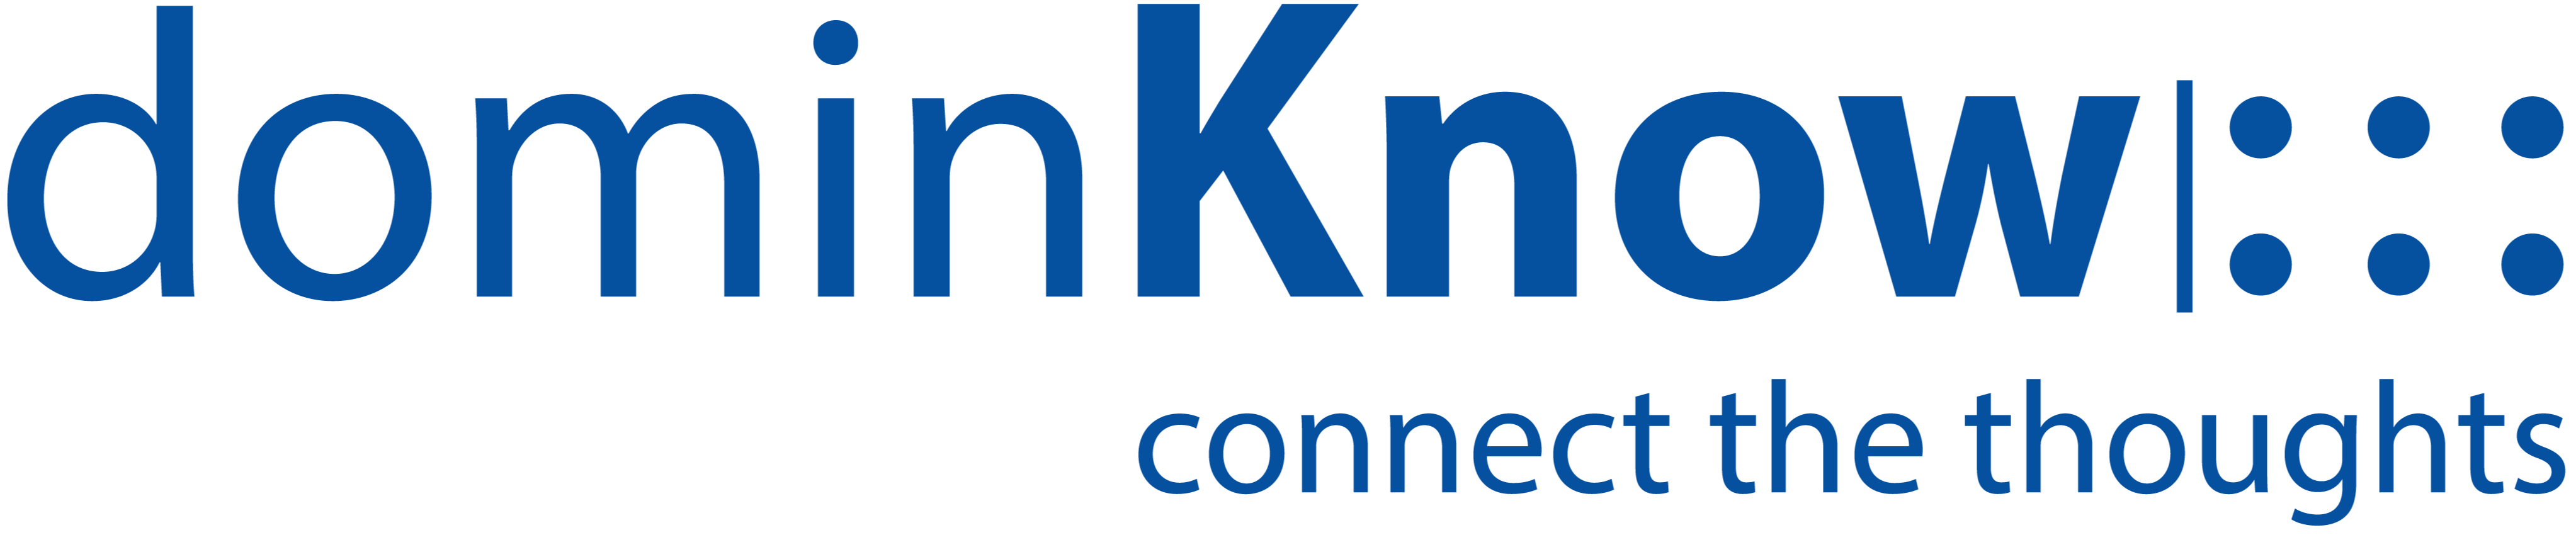 Dominknow complete logo blue